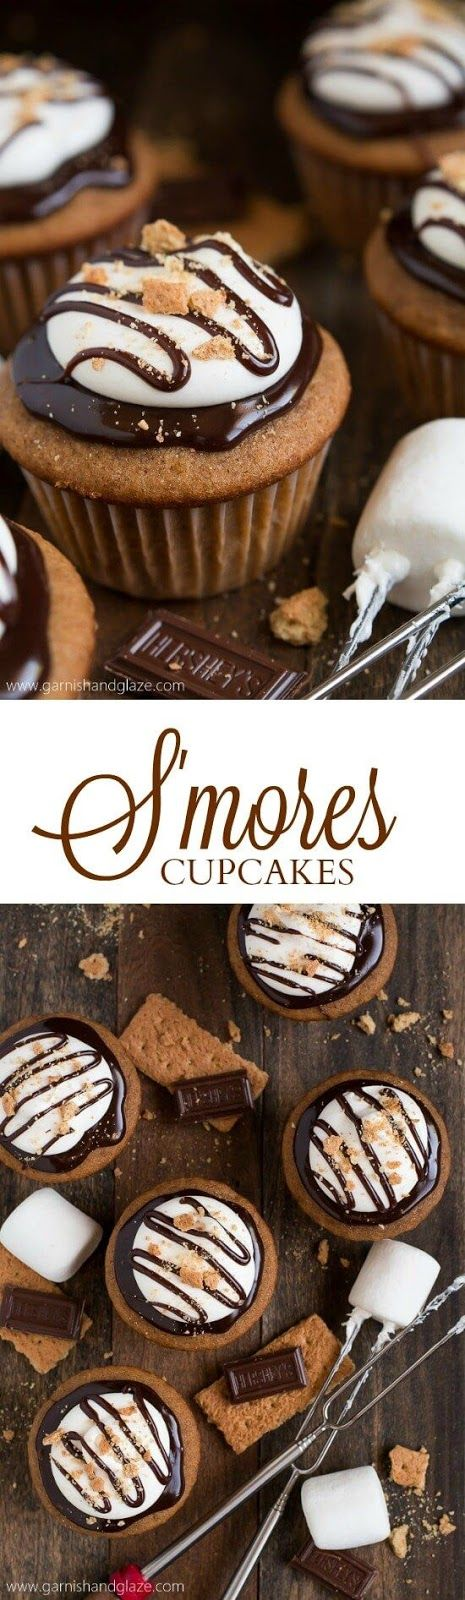 INGREDIENTS     For the Cupcake:   1⅓ cup all-purpose flour   ¾ cup finely crushed graham cracker crumbs   2 teaspoons cinnamon   1 tea...